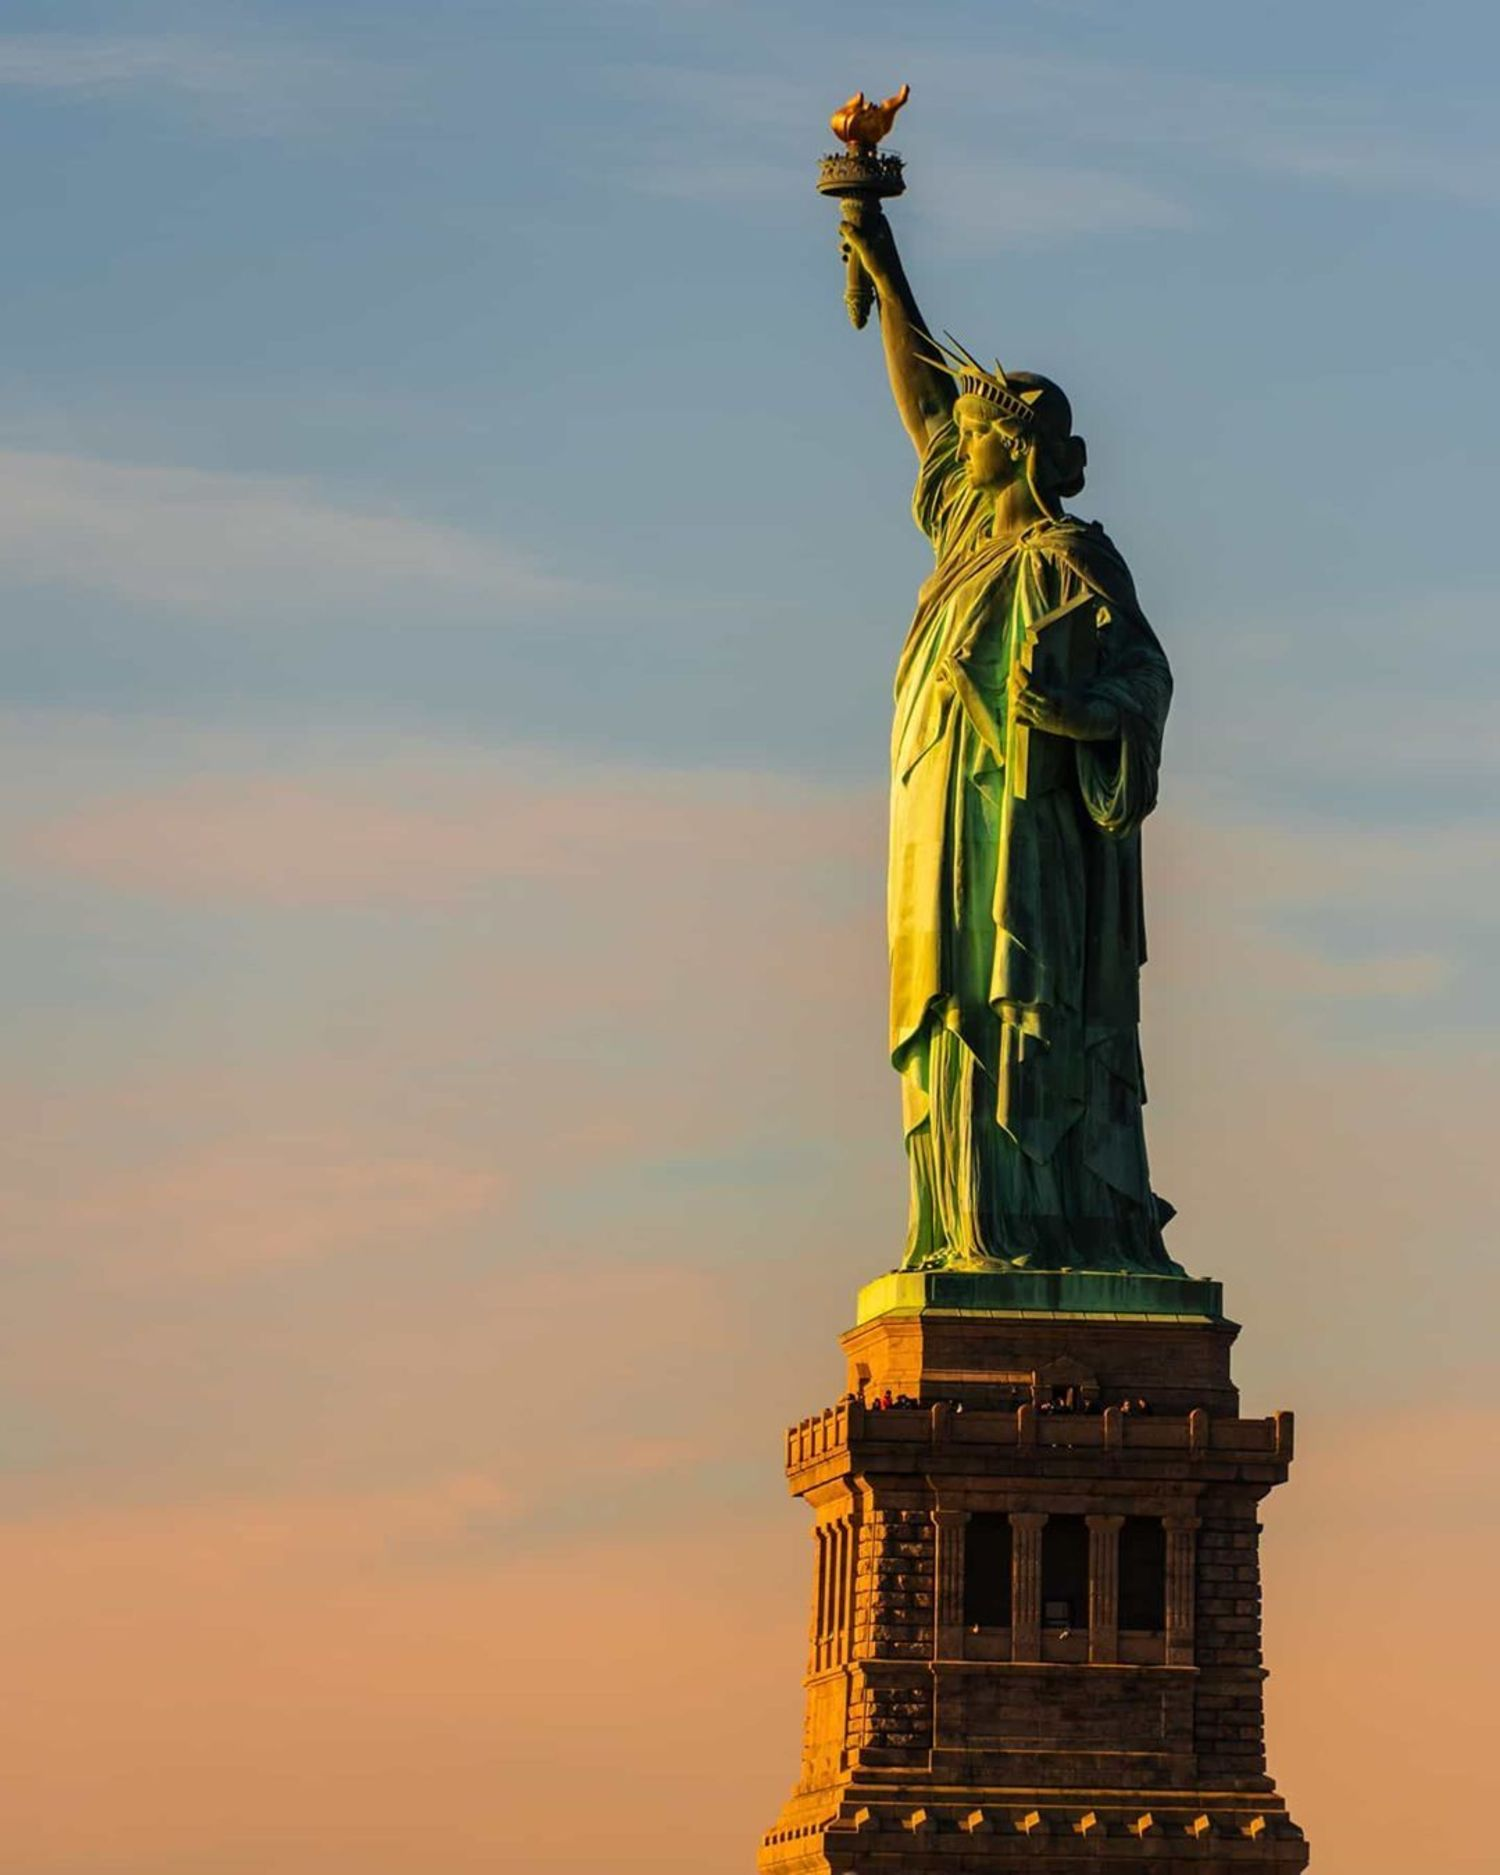 Statue of Liberty, New York, New York